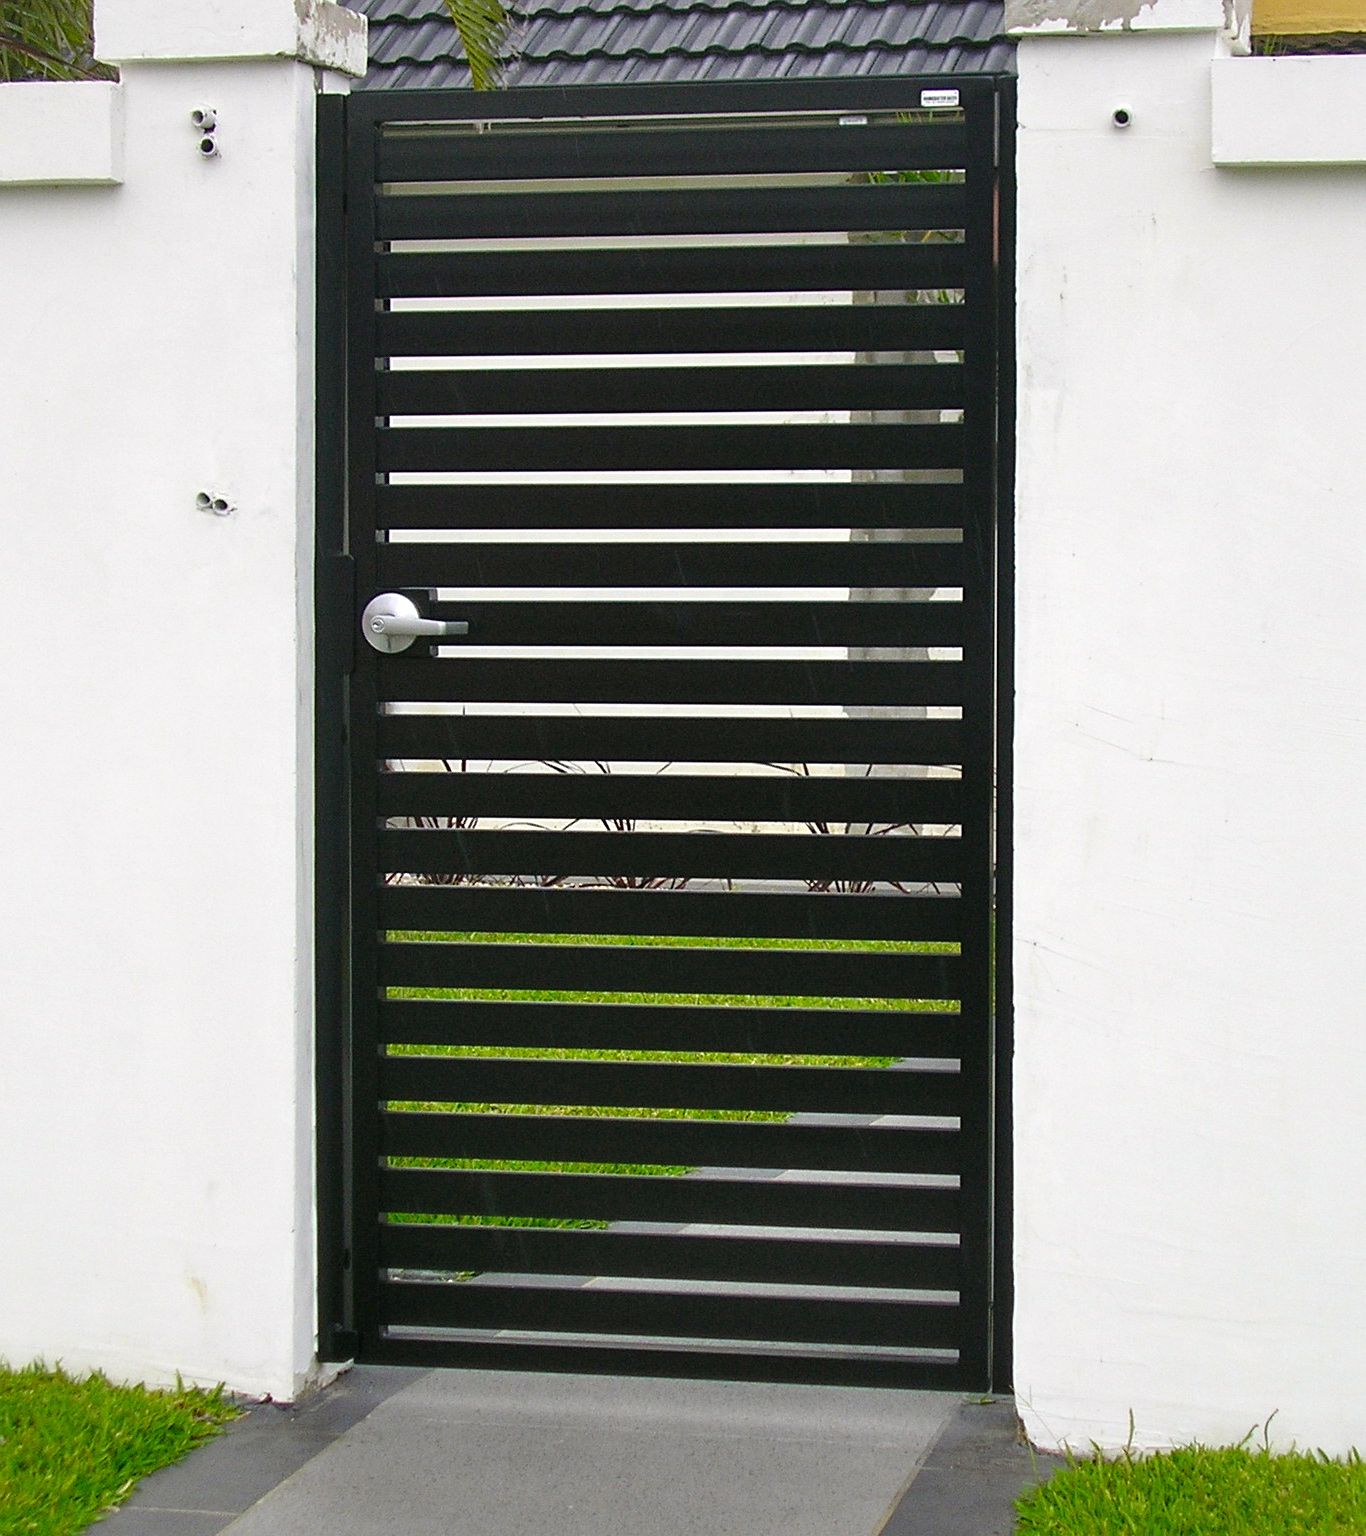 Pedestrian gate containing the hurricane pinterest next generation fencing pool fencing gates and balustrades gold coast baanklon Images